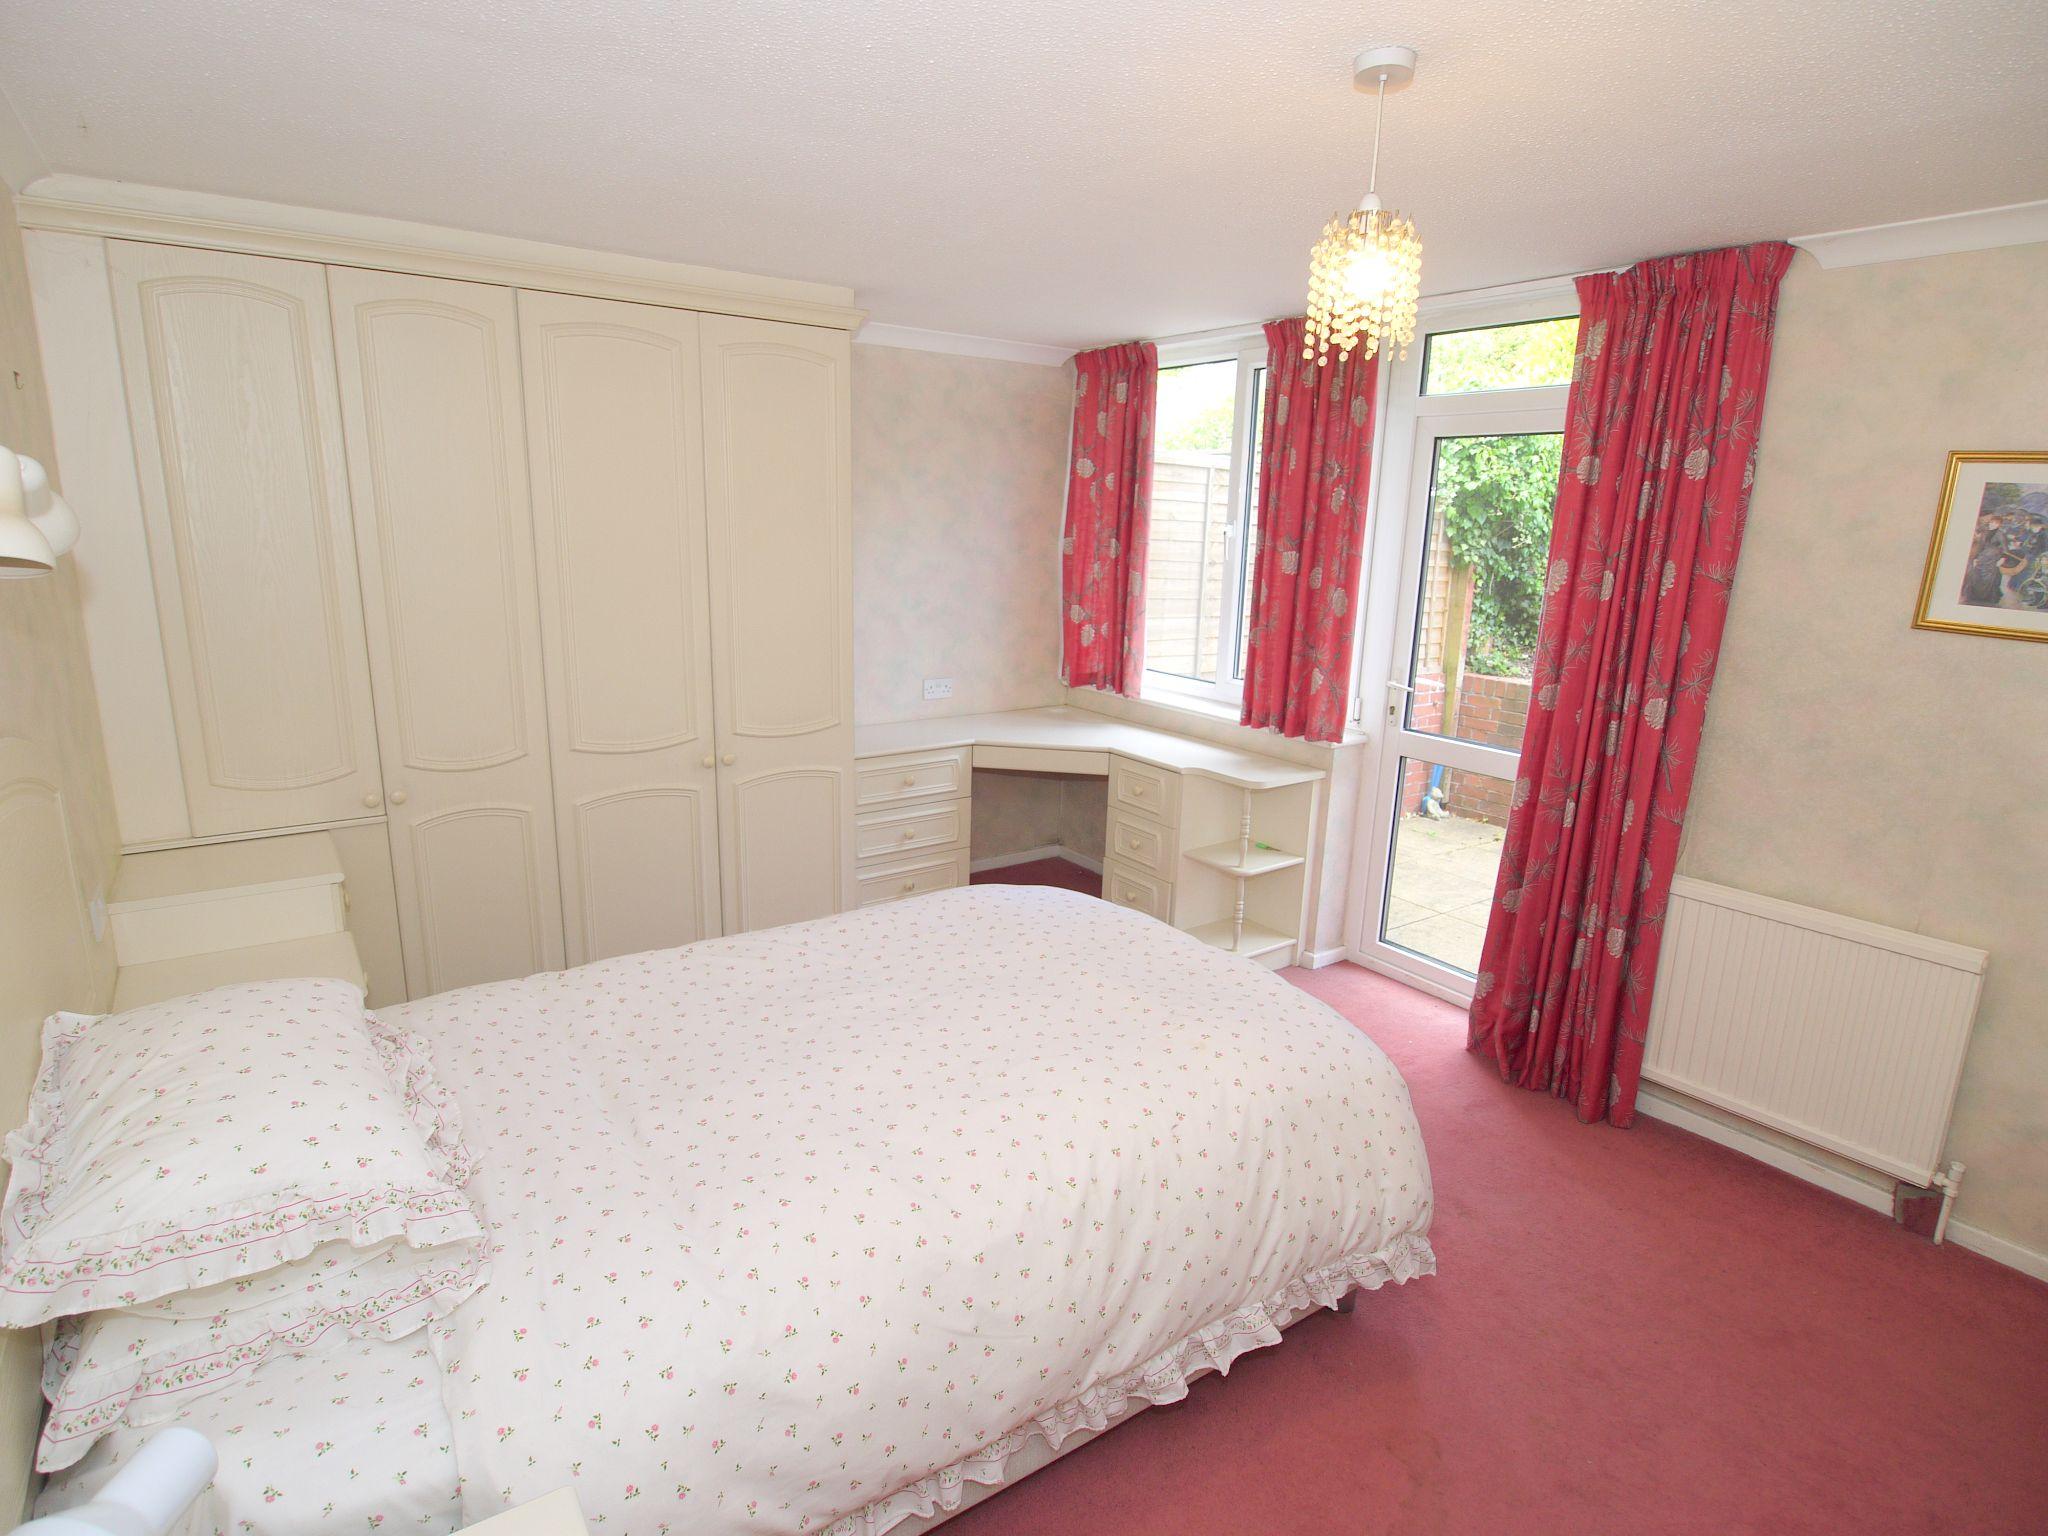 4 bedroom detached house For Sale in Sevenoaks - Photograph 5